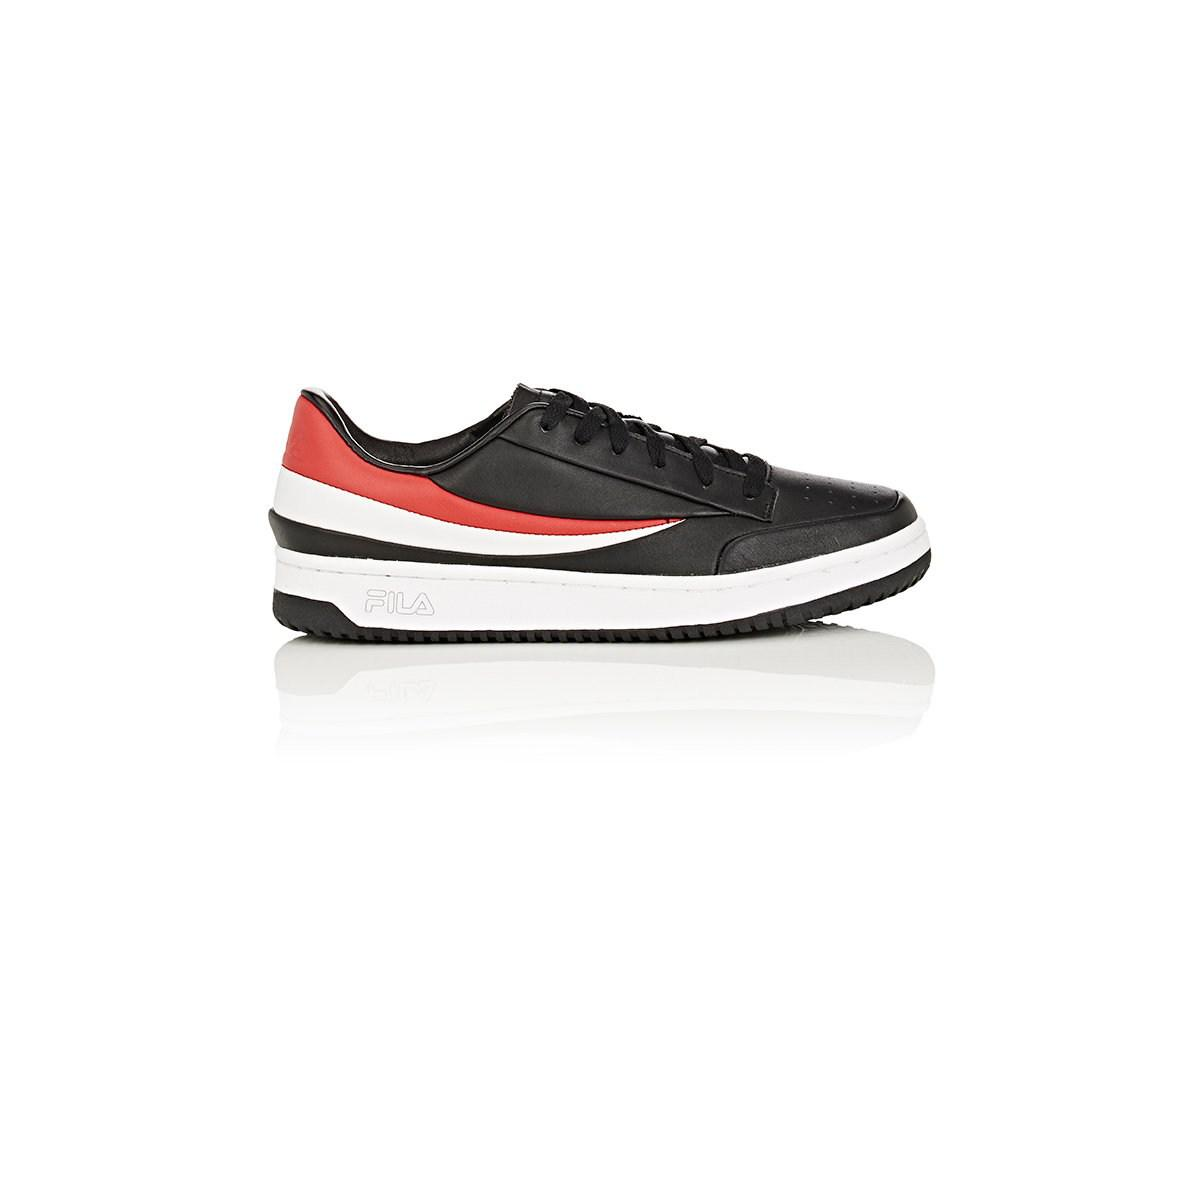 c31d06a7d968 Fila Bny Sole Series  Original Tennis Leather Sneakers in Black for ...